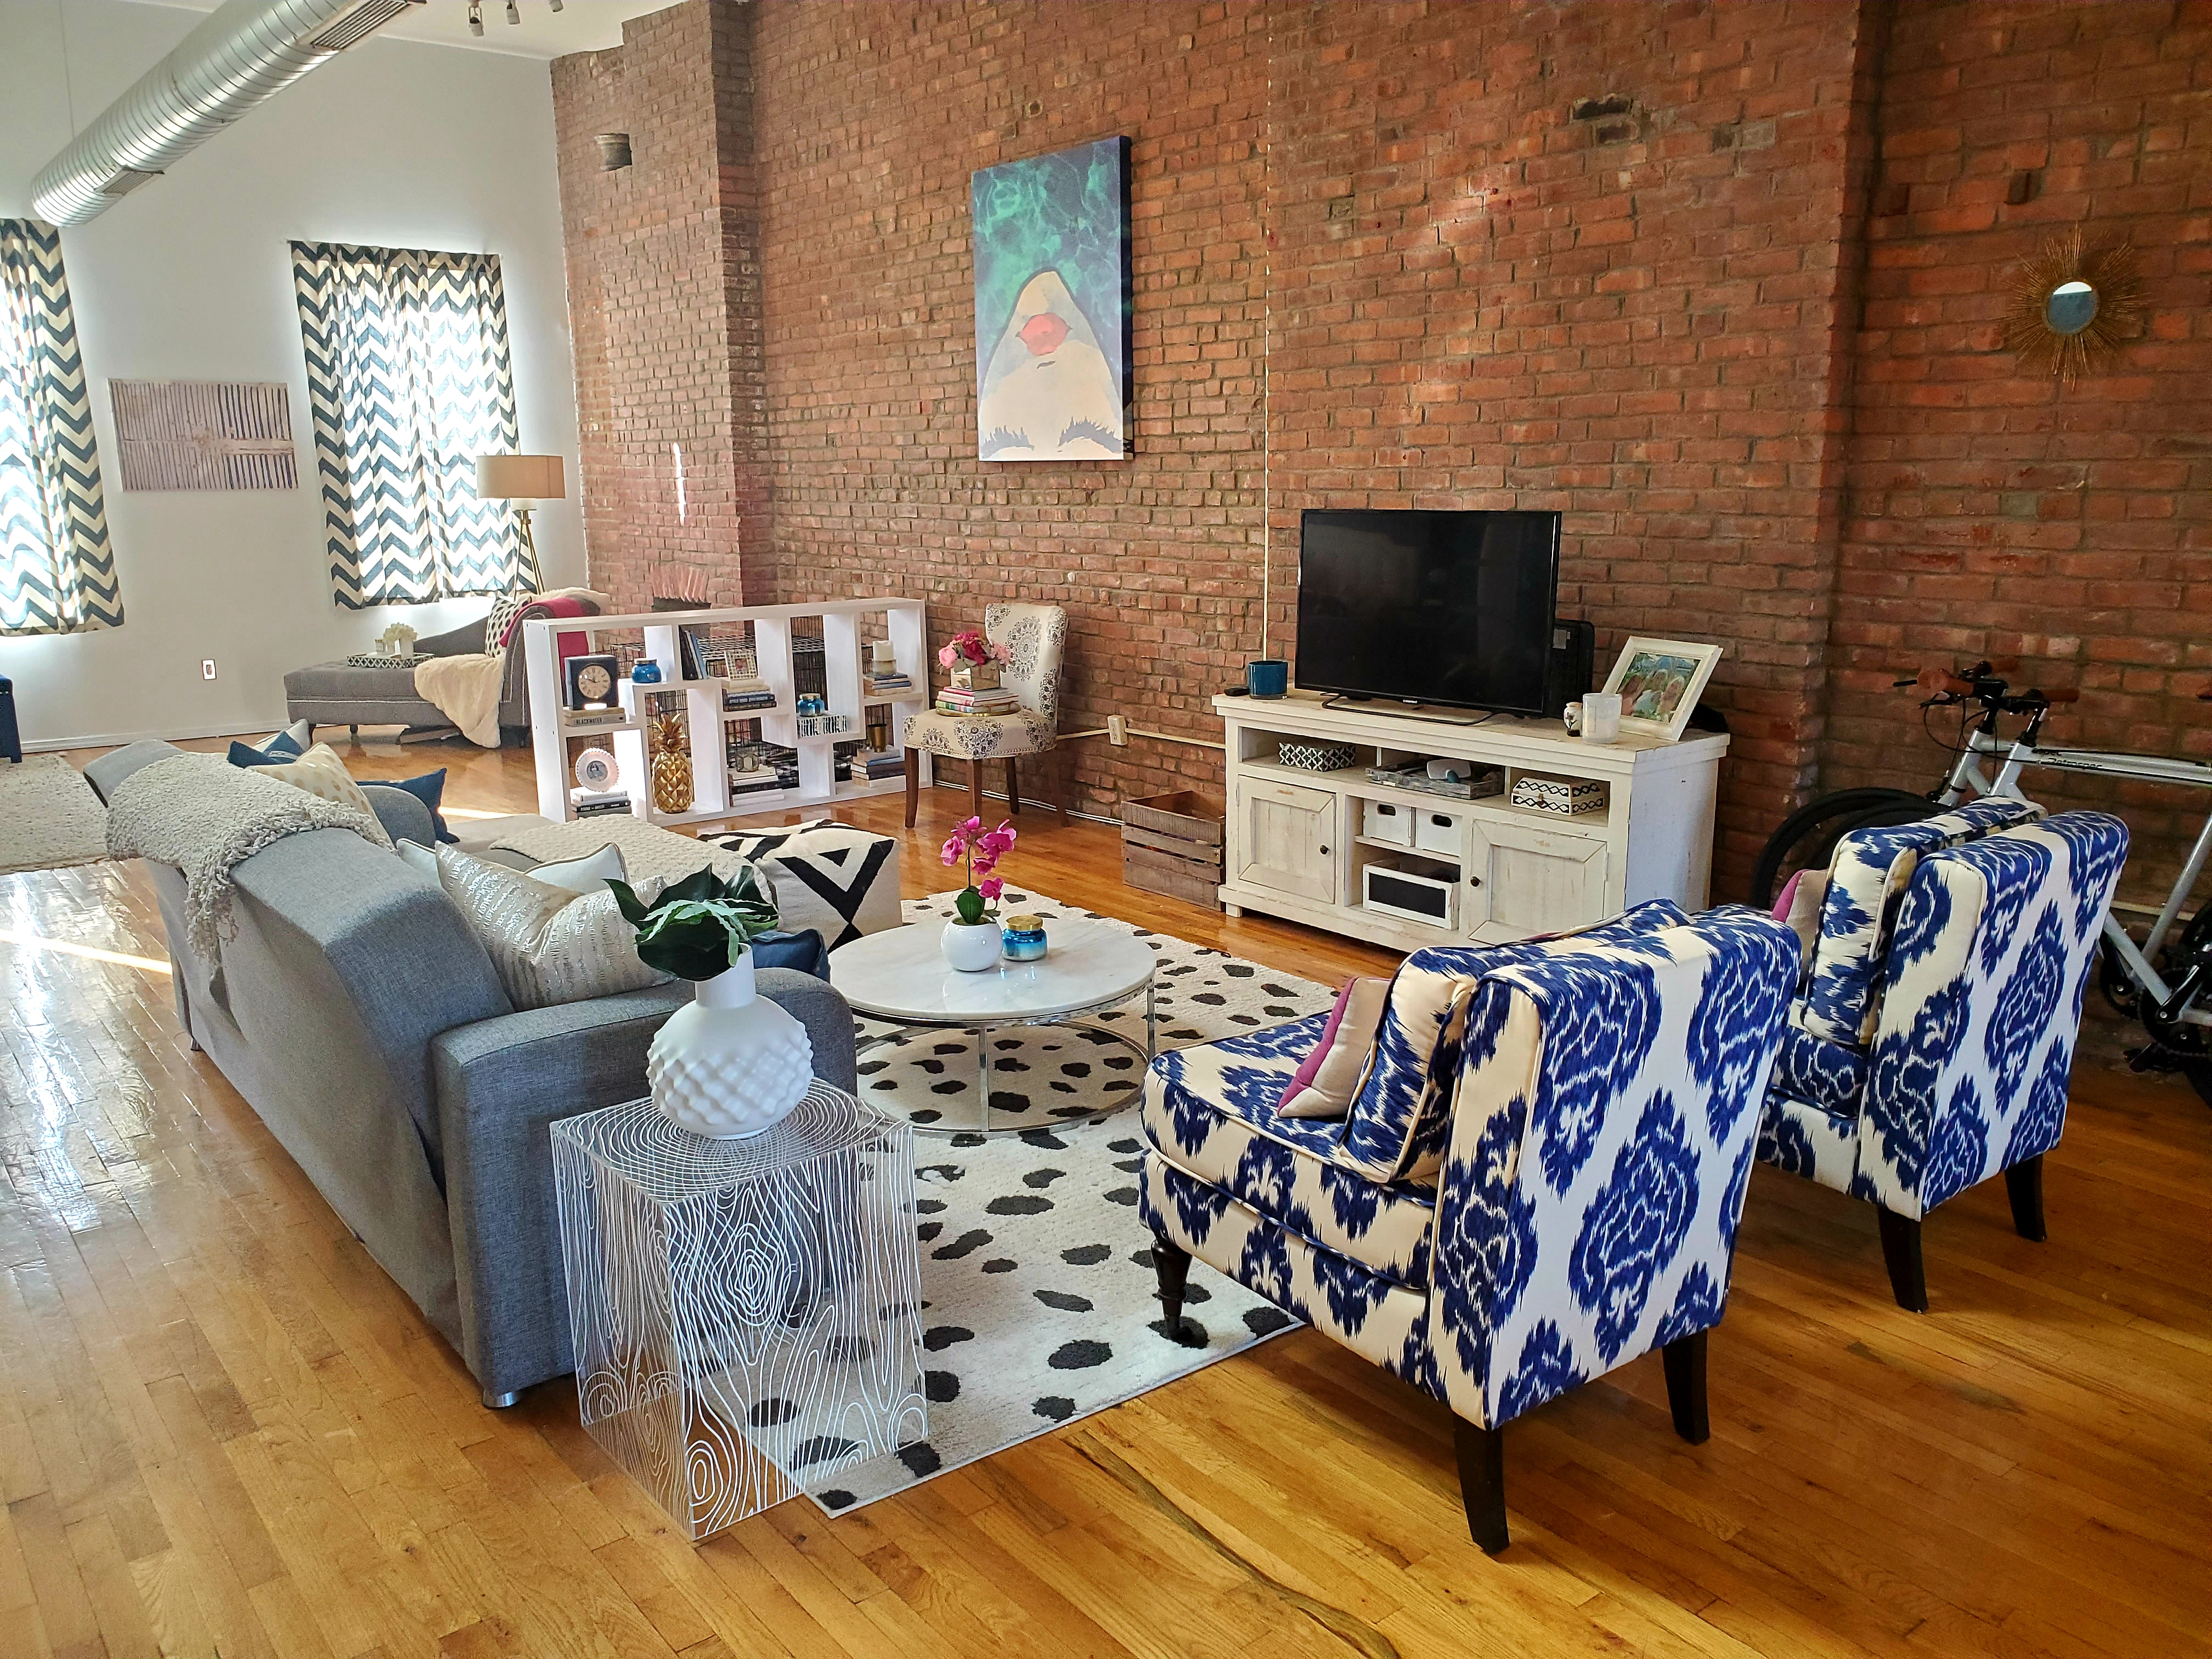 Astoria Interiors: Funky and Functional on Astoria Blvd | We ...